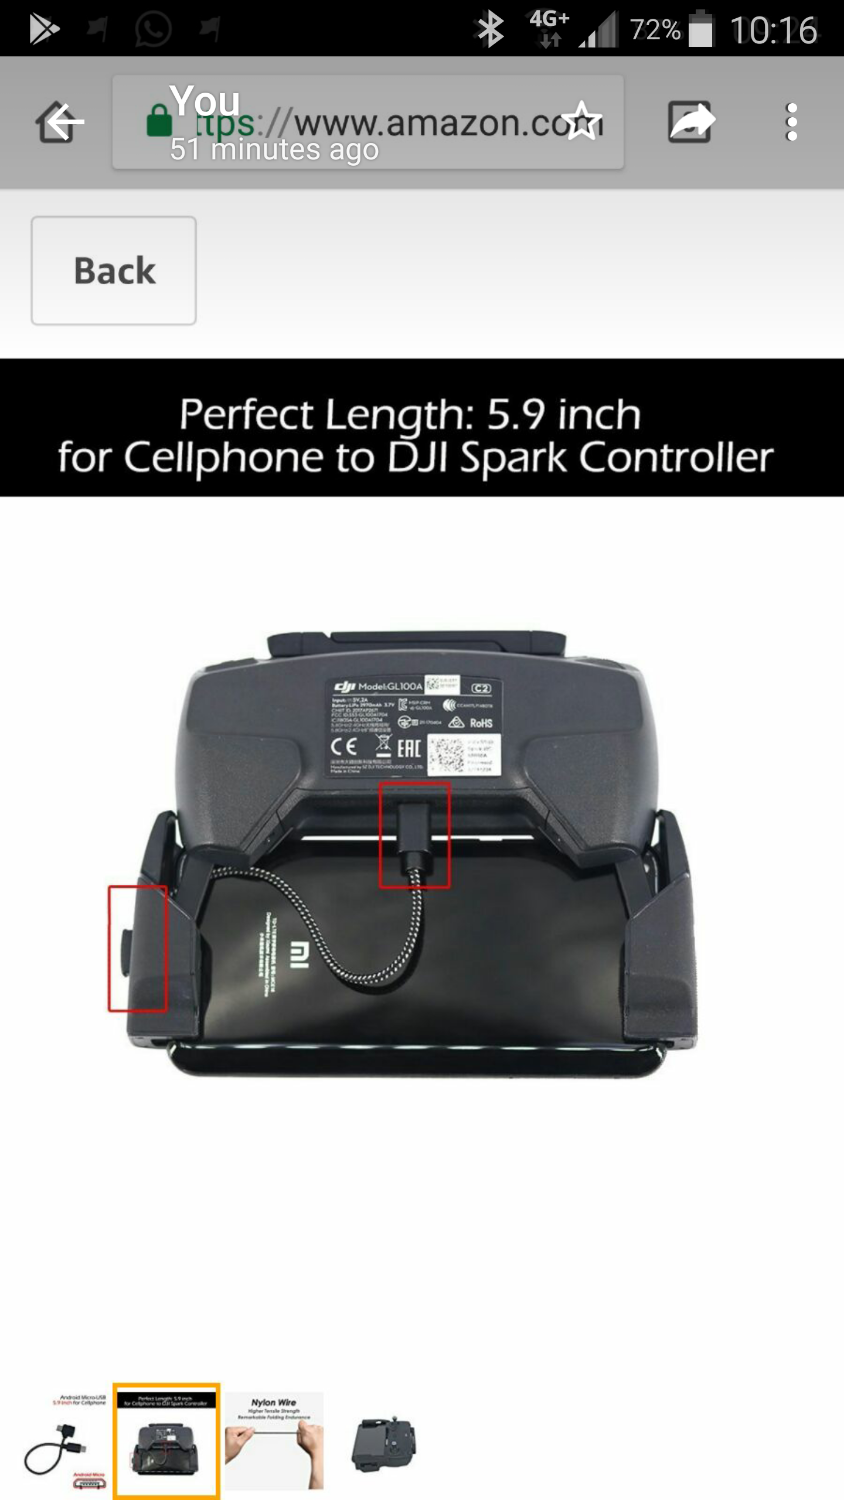 OTG WORKS-DJI GO 4_4 2 12-For Android-19th April       DJI FORUM